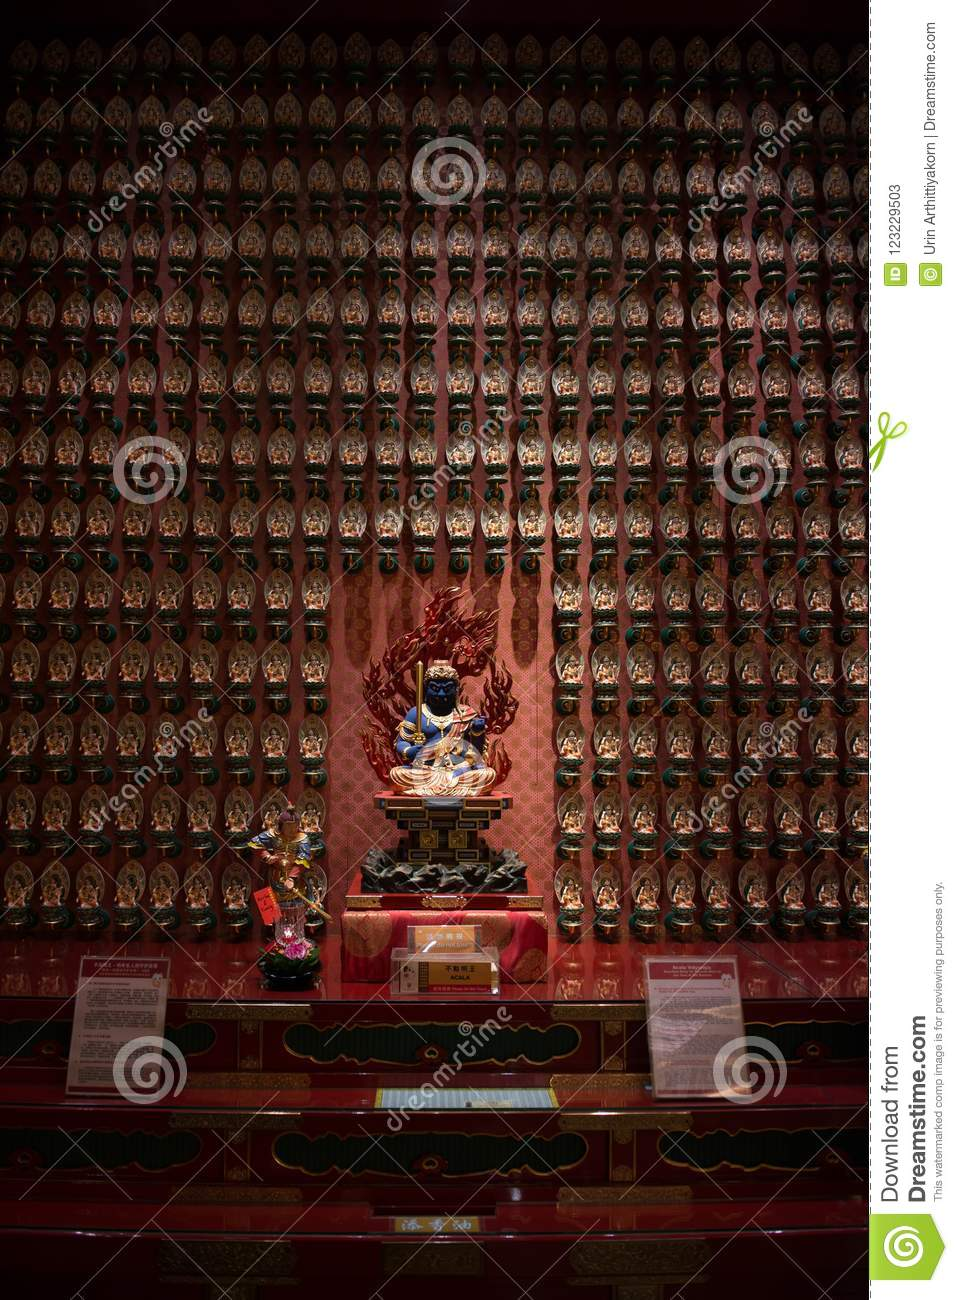 The Bodhisattva in Buddha Tooth Relic Temple